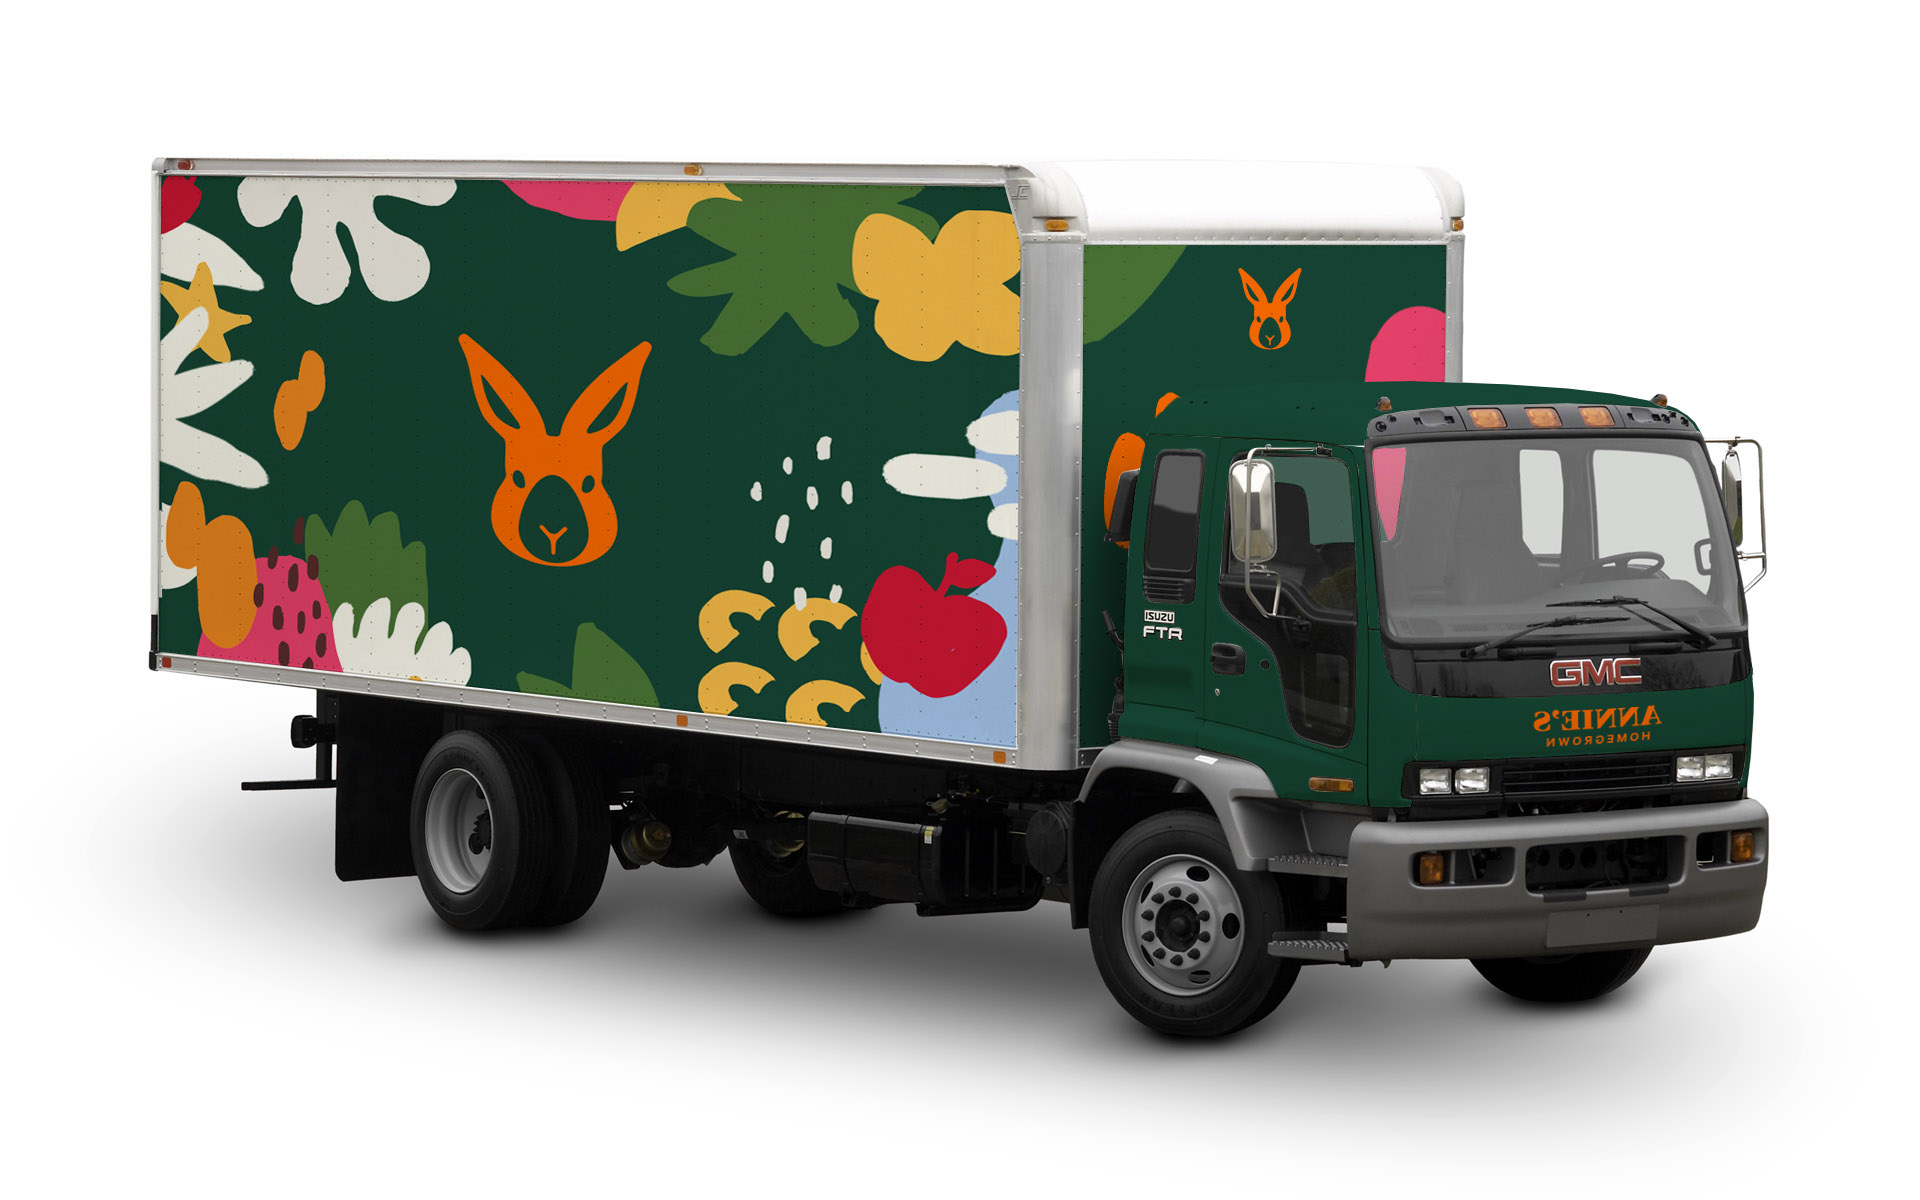 Truck mock-up_new.jpg